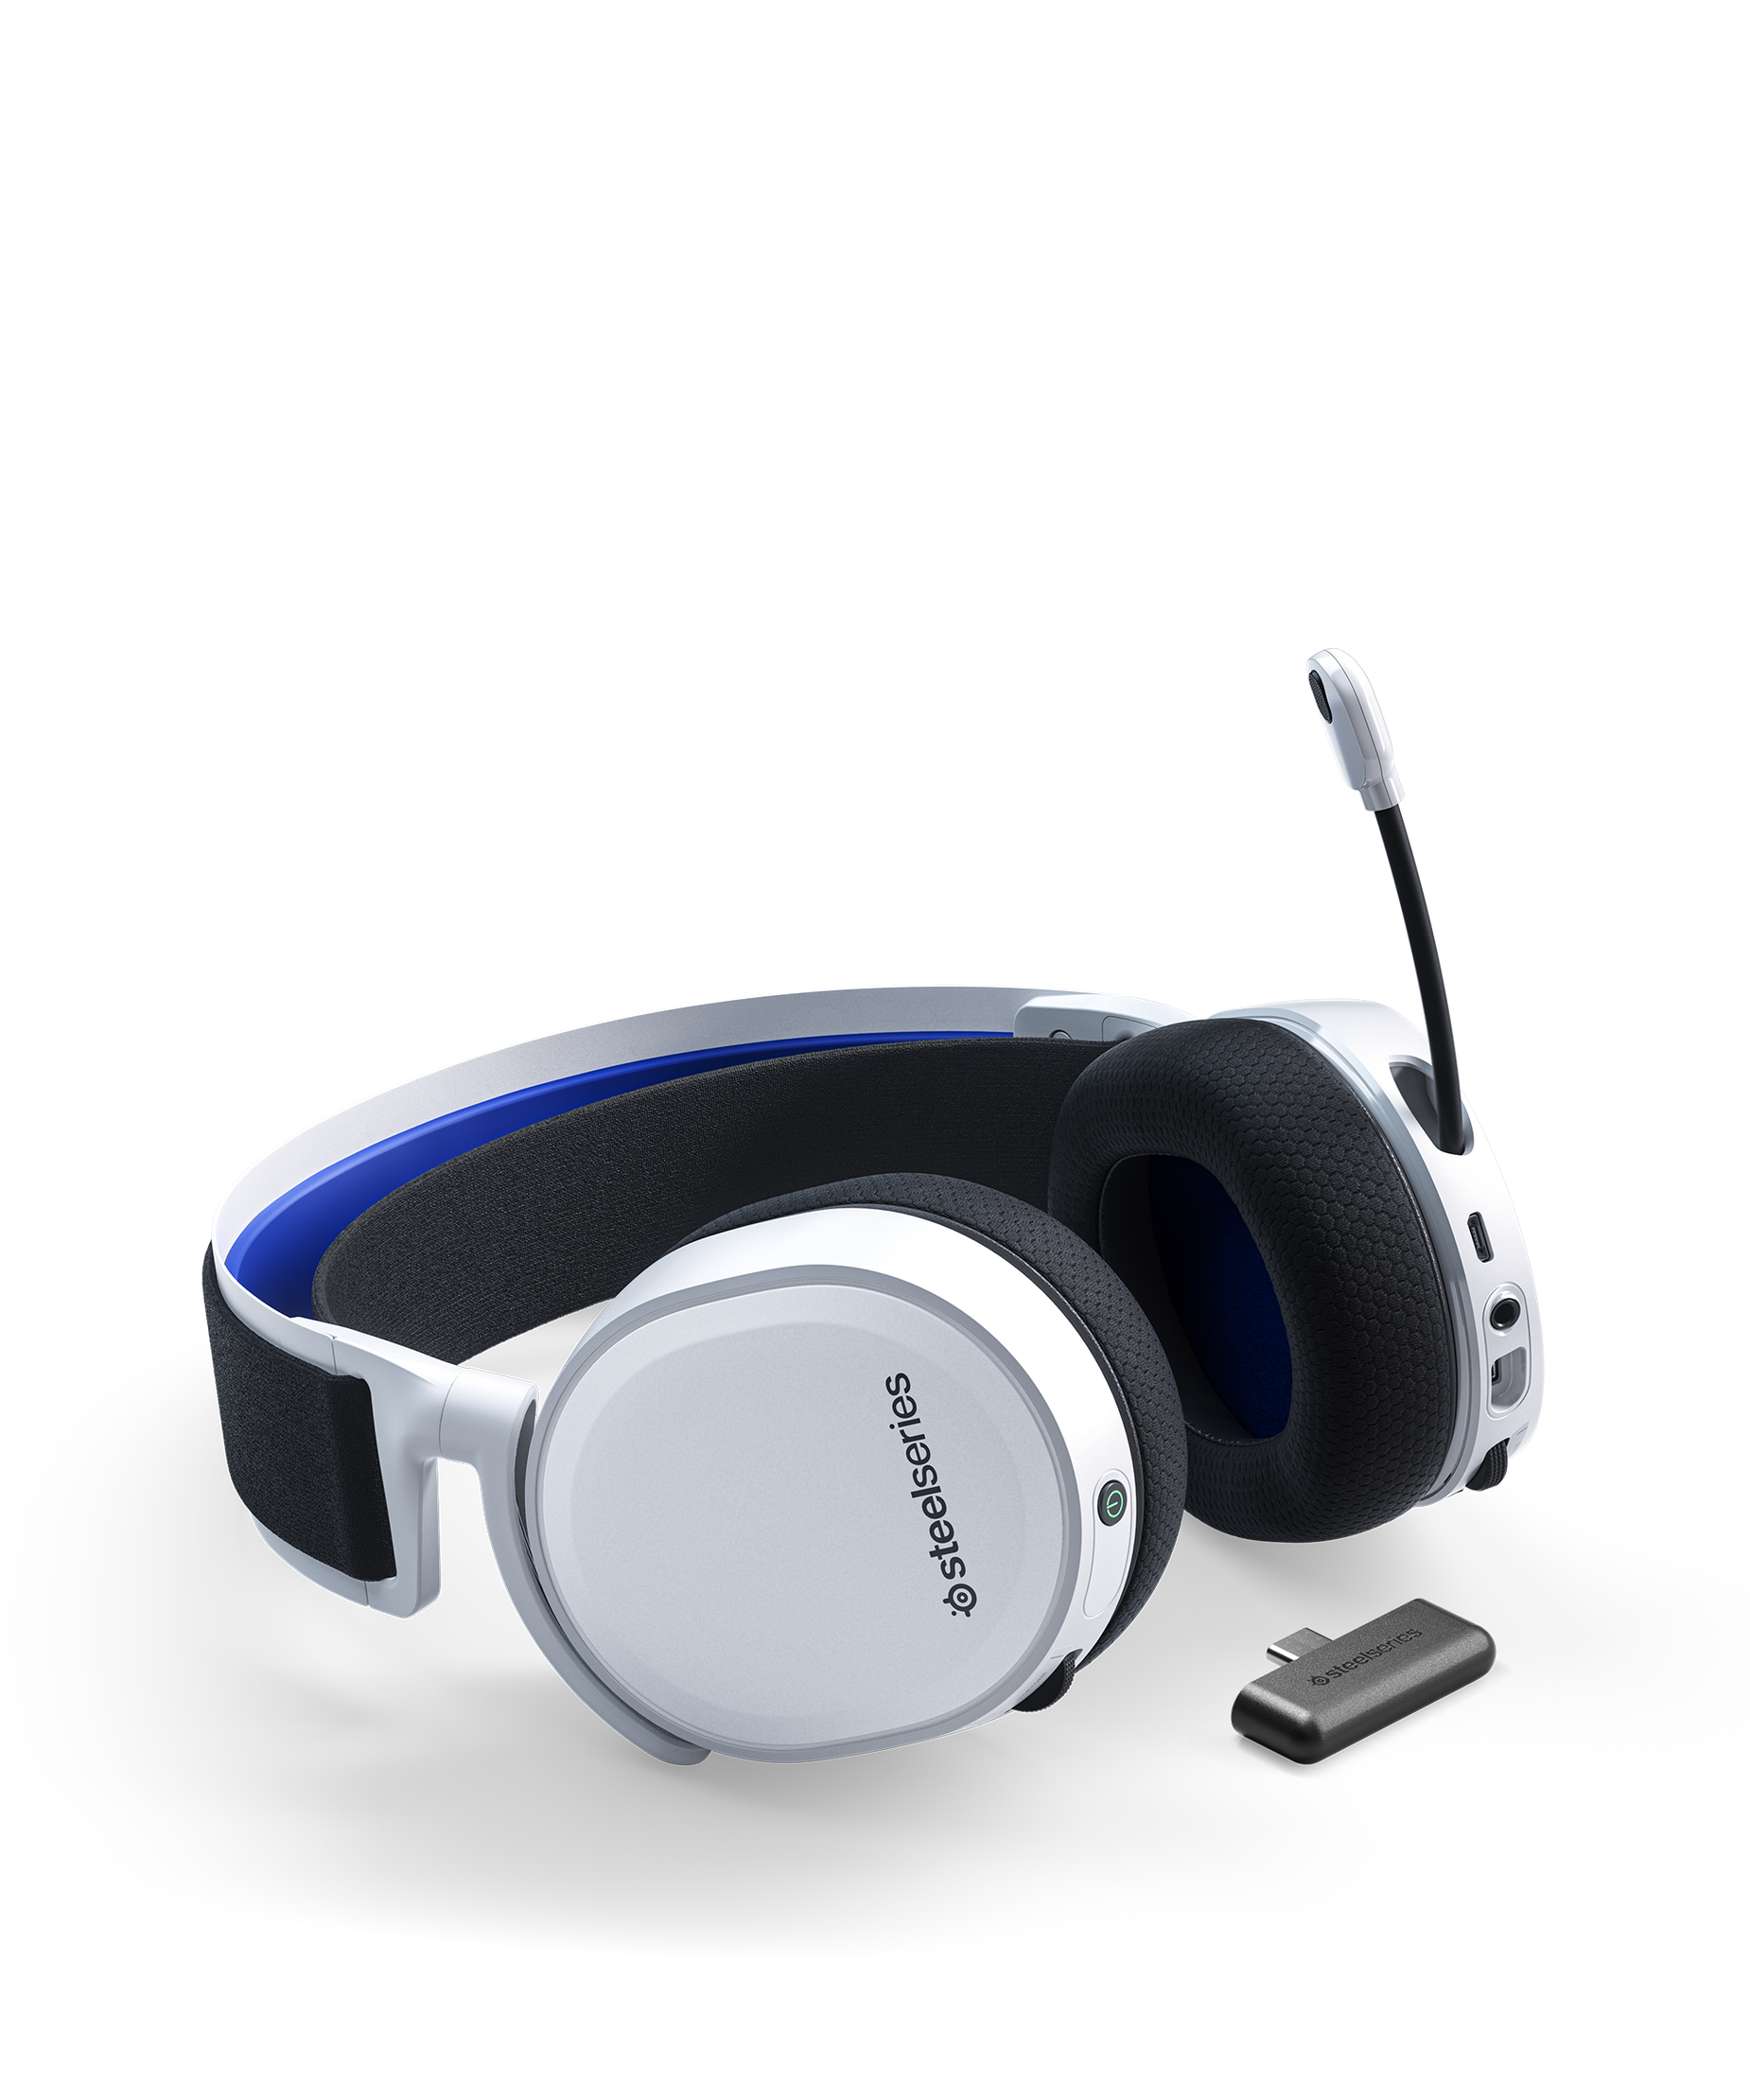 Arctis 7P headset laying flat with clearcast microphone in the extended position